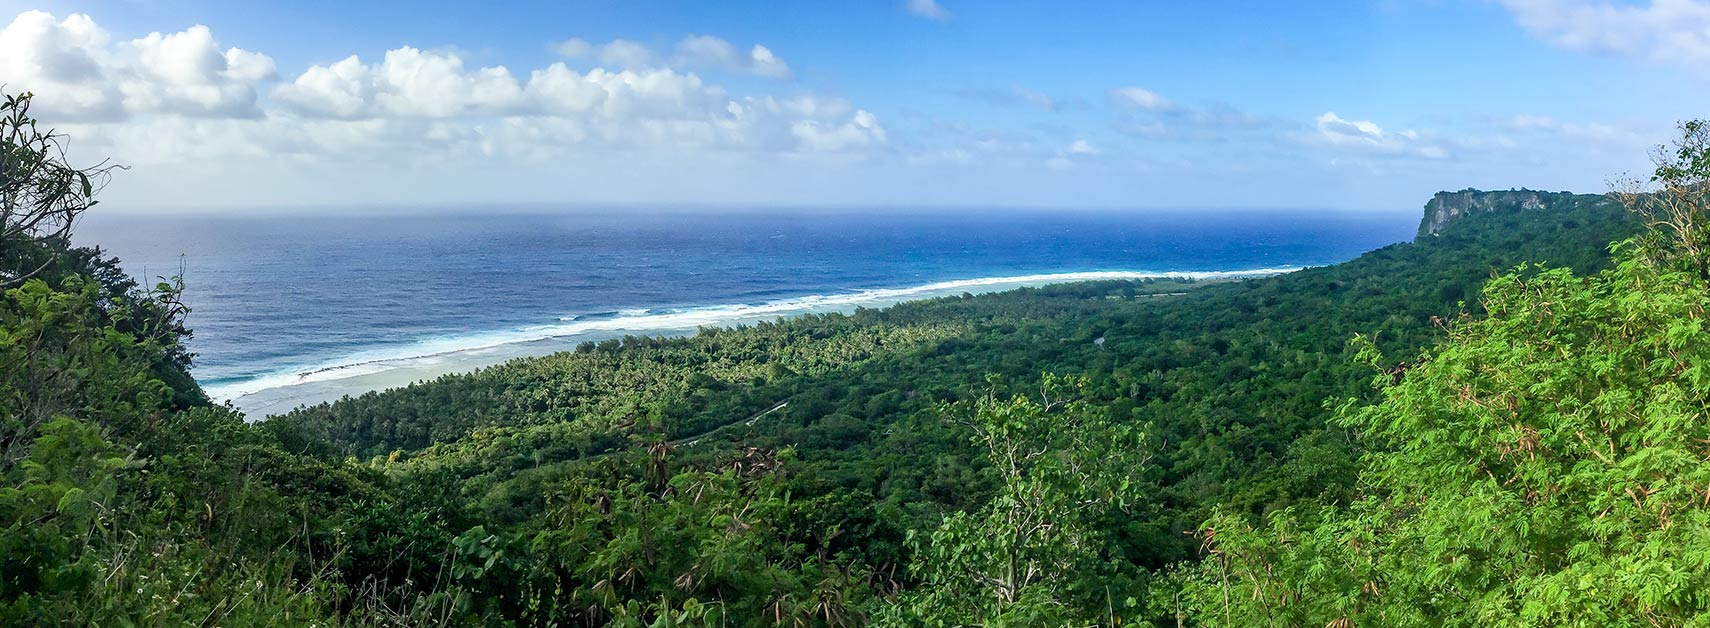 Ritidian Point within Guam National Wildlife Refuge